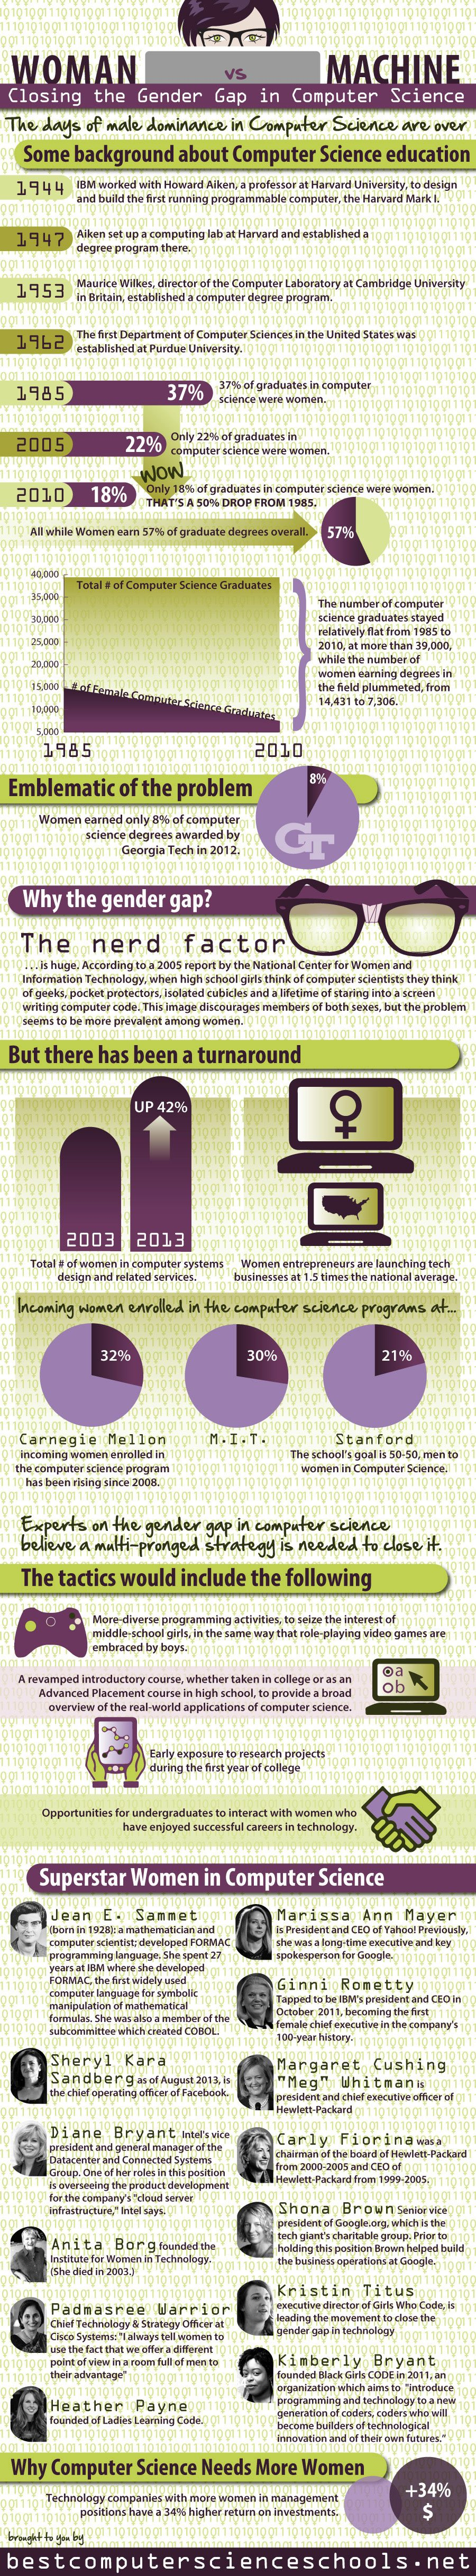 Closing The Gender Gap In Computer Science